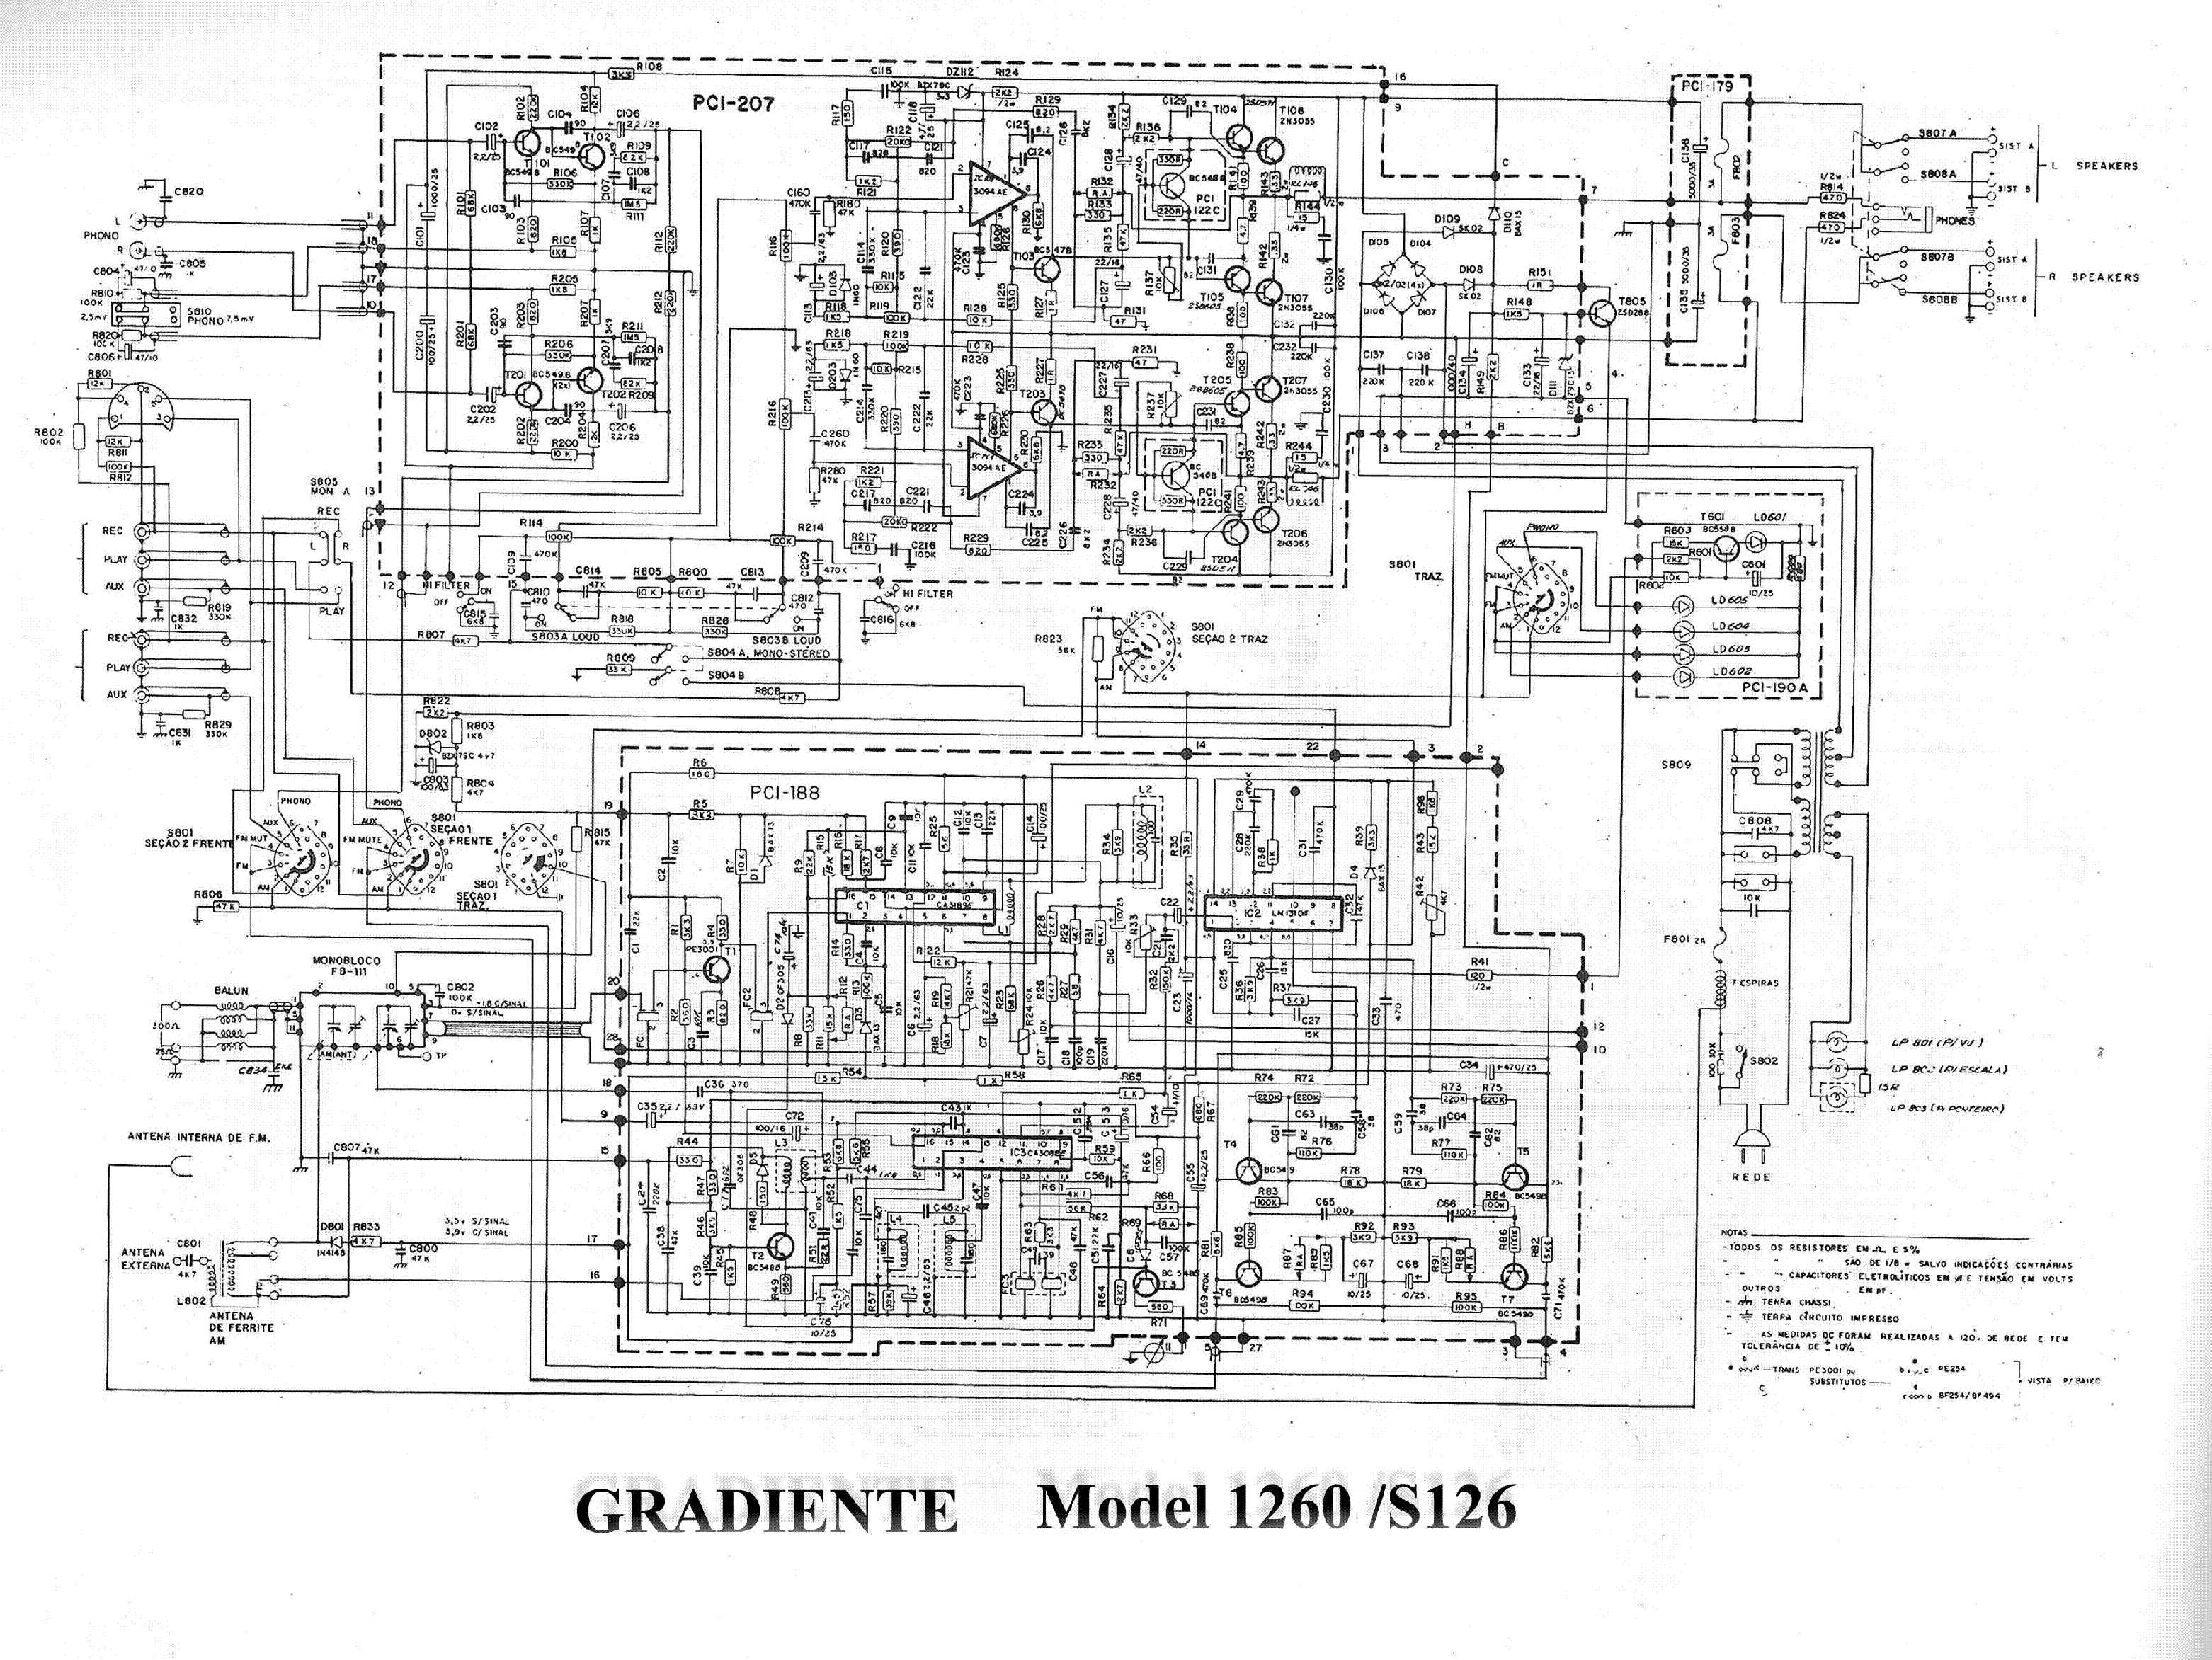 GRADIENTE MODEL 1260 S126 SCH service manual